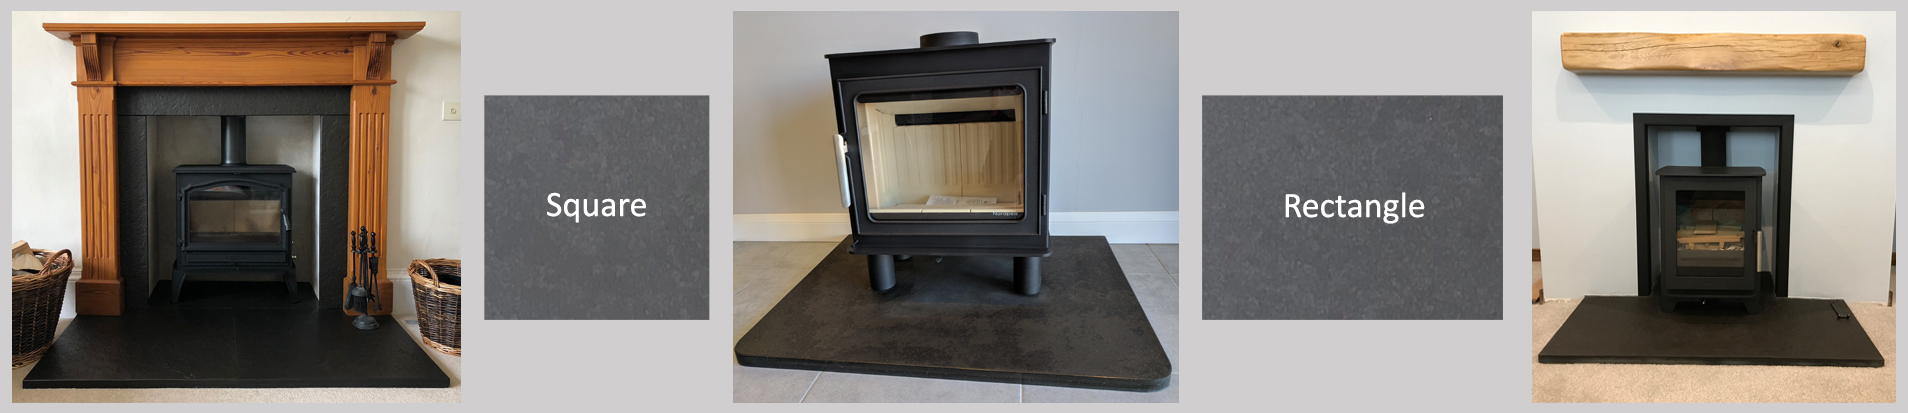 Norse Stone Square and Rectangle Caithness Flagstone Hearth